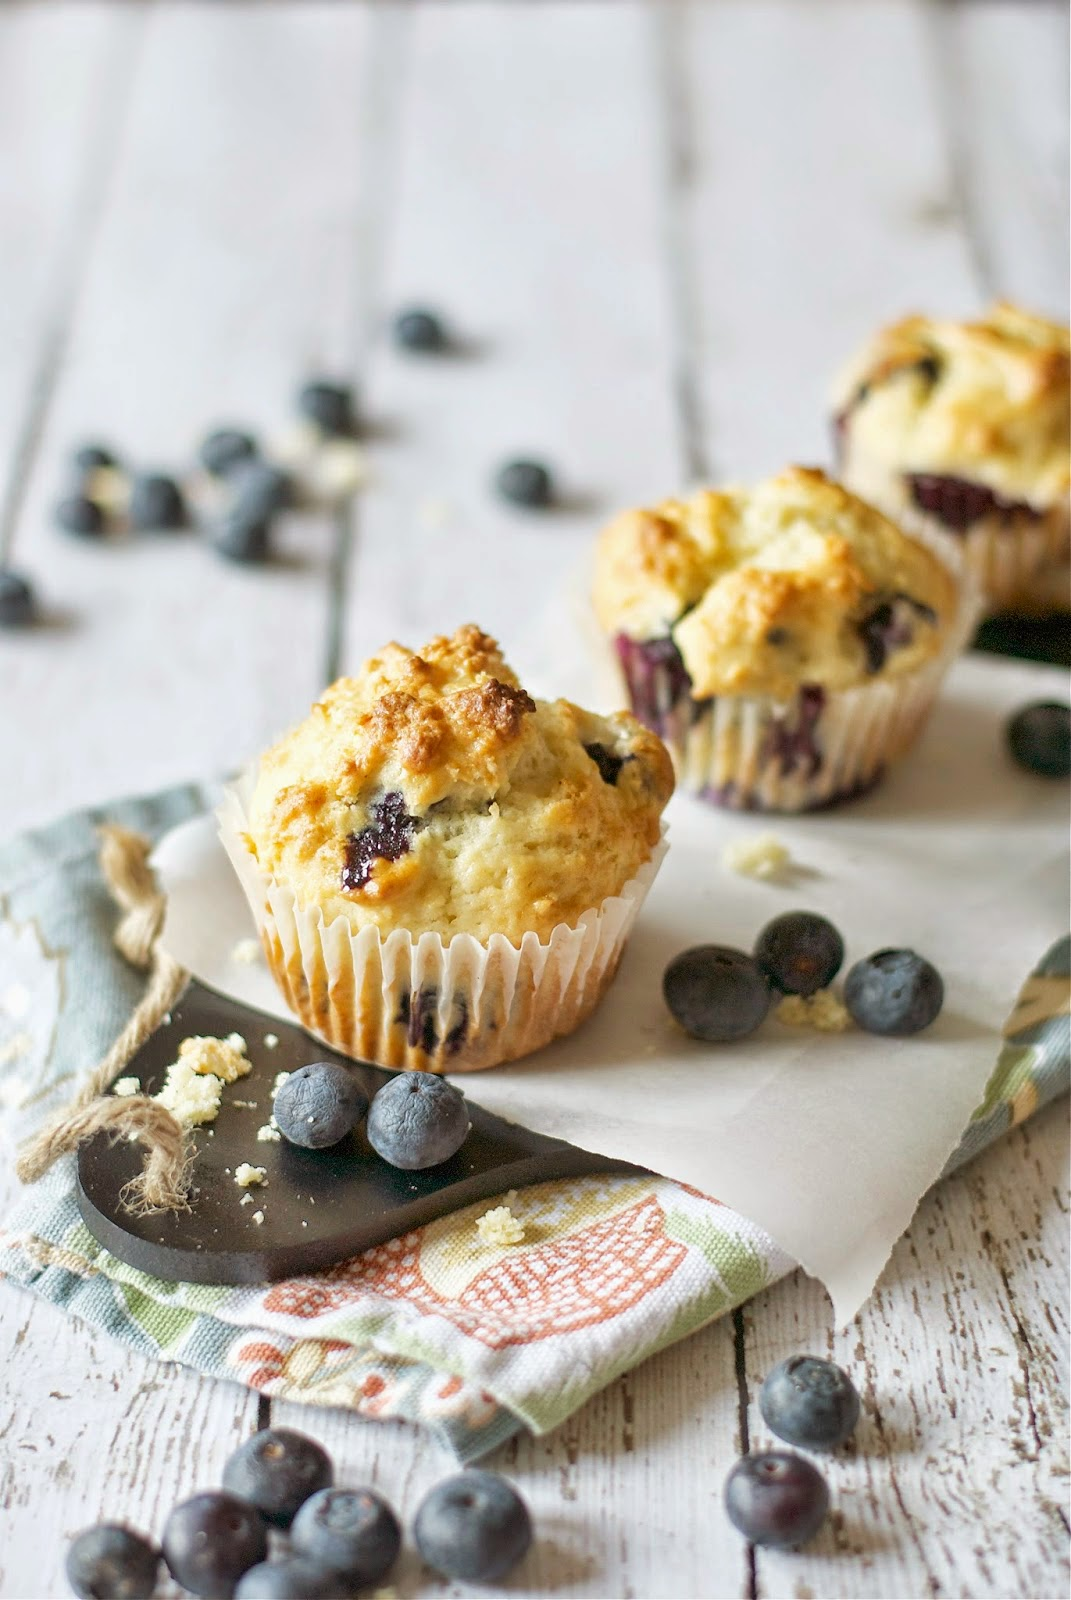 Lemon Ginger Blueberry Muffins